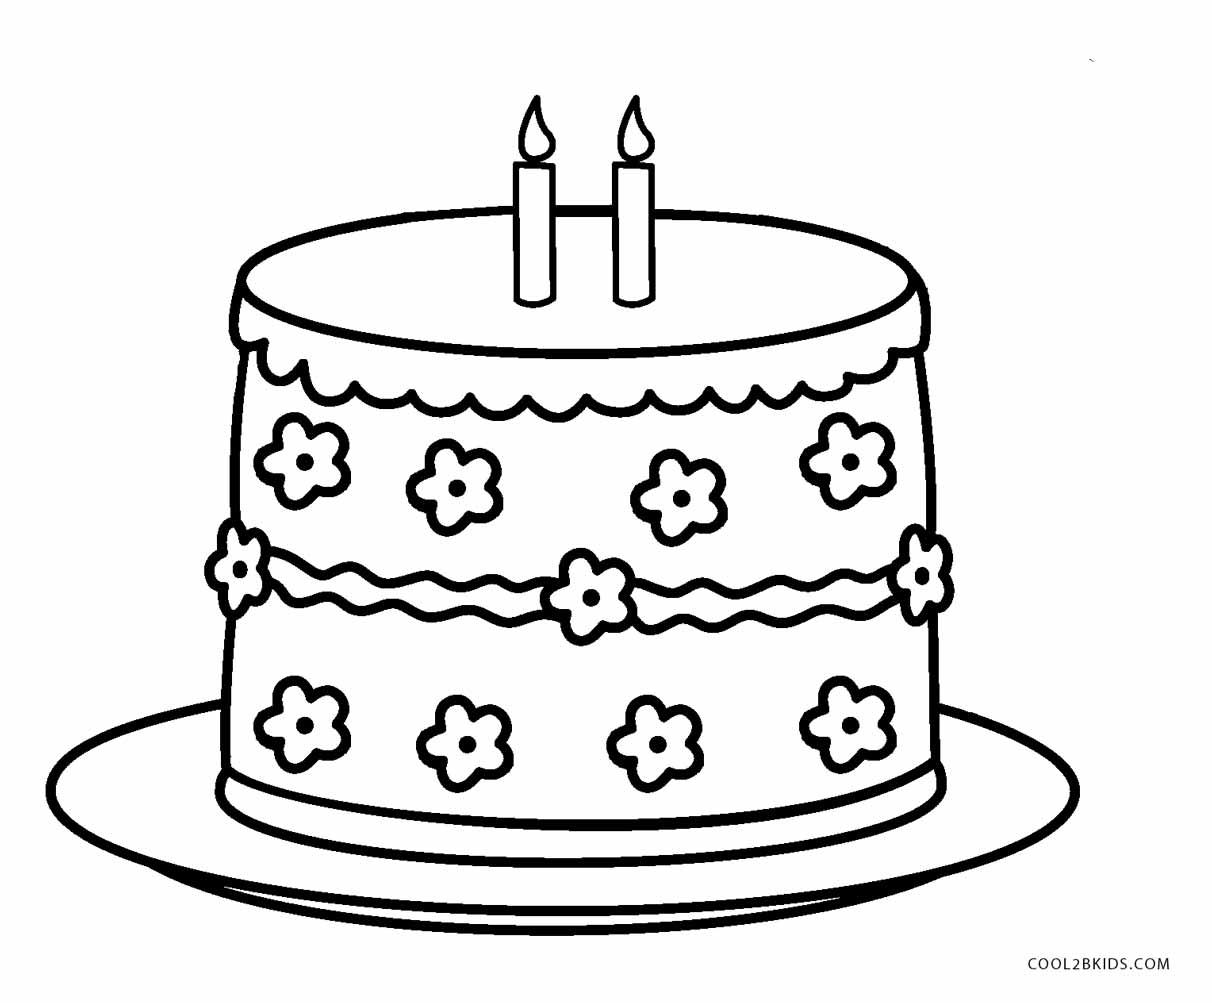 coloring cake pages free printable birthday cake coloring pages for kids coloring pages cake